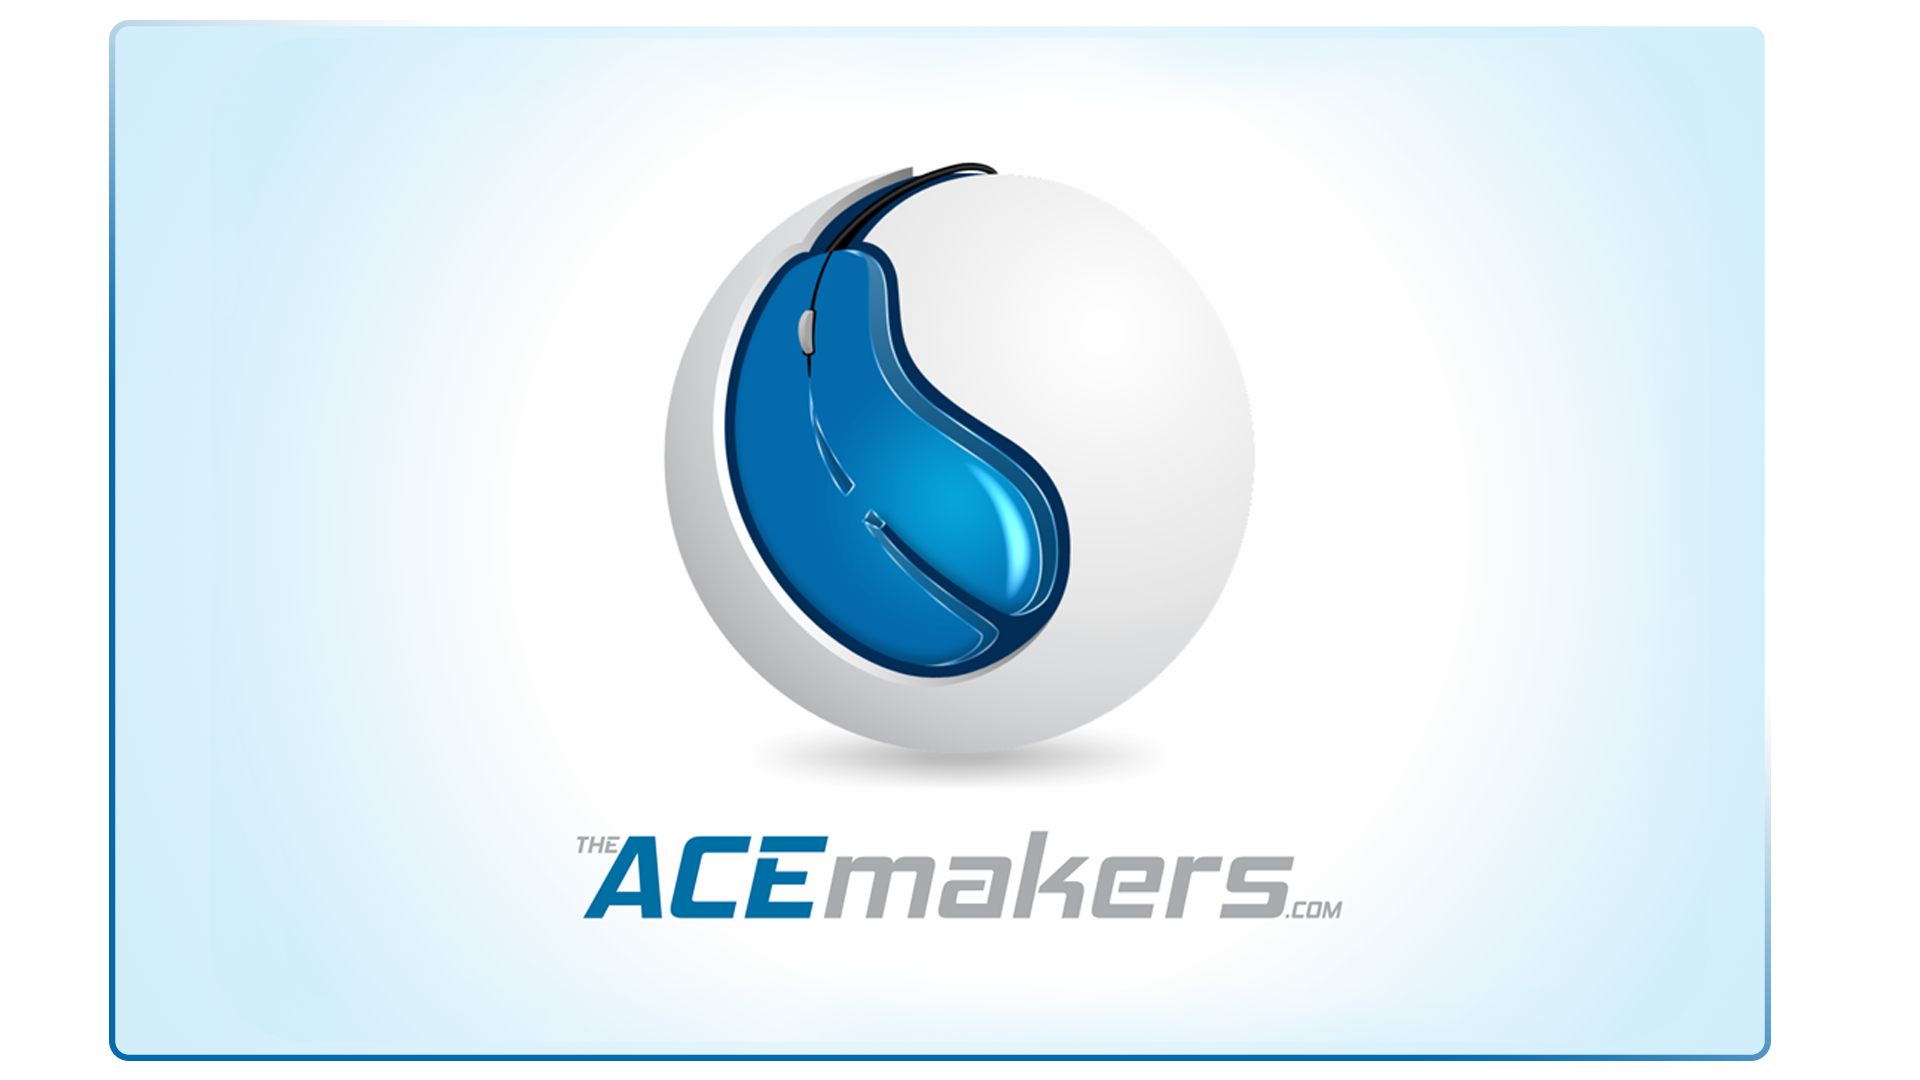 TheAcemakers.com